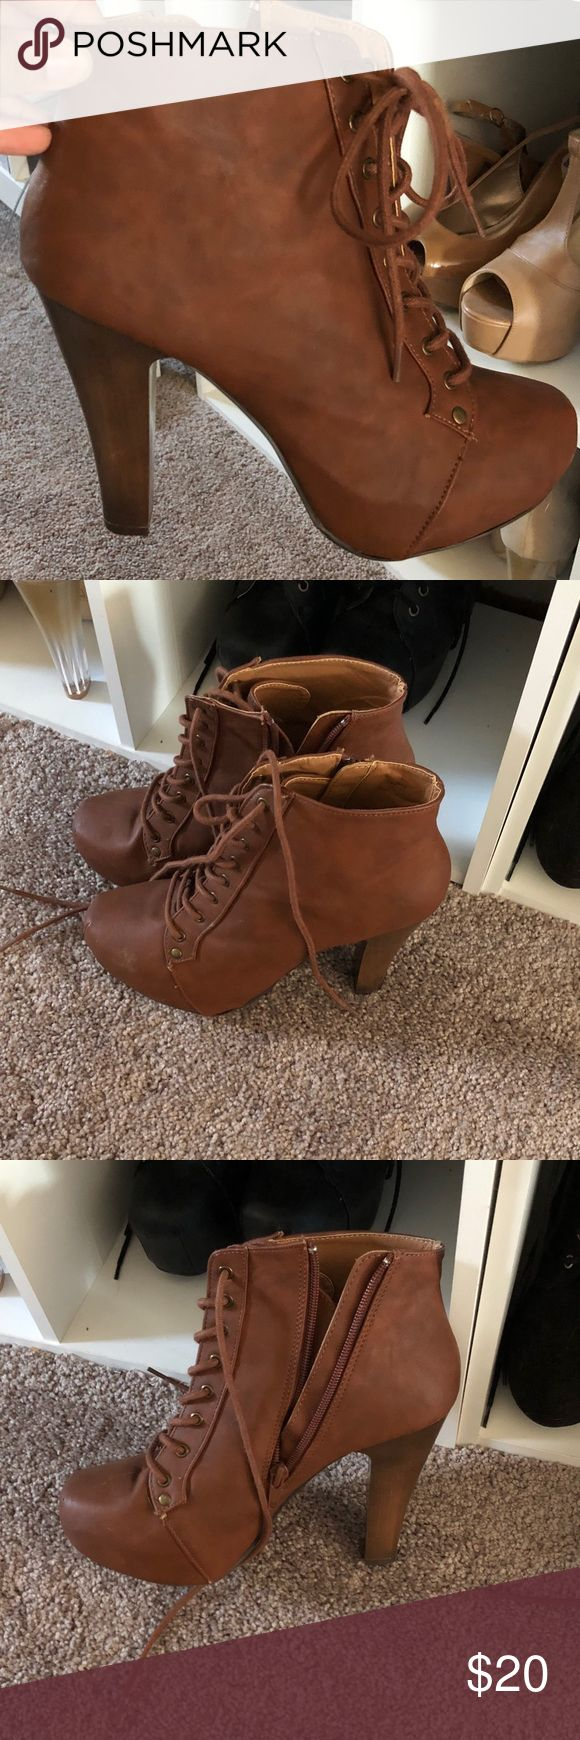 Charlotte Russe Heeled Boots That's Boots we're never worn. Tried on the store and then purchase but never worn. Perfect for fall Charlotte Russe Shoes Heeled Boots